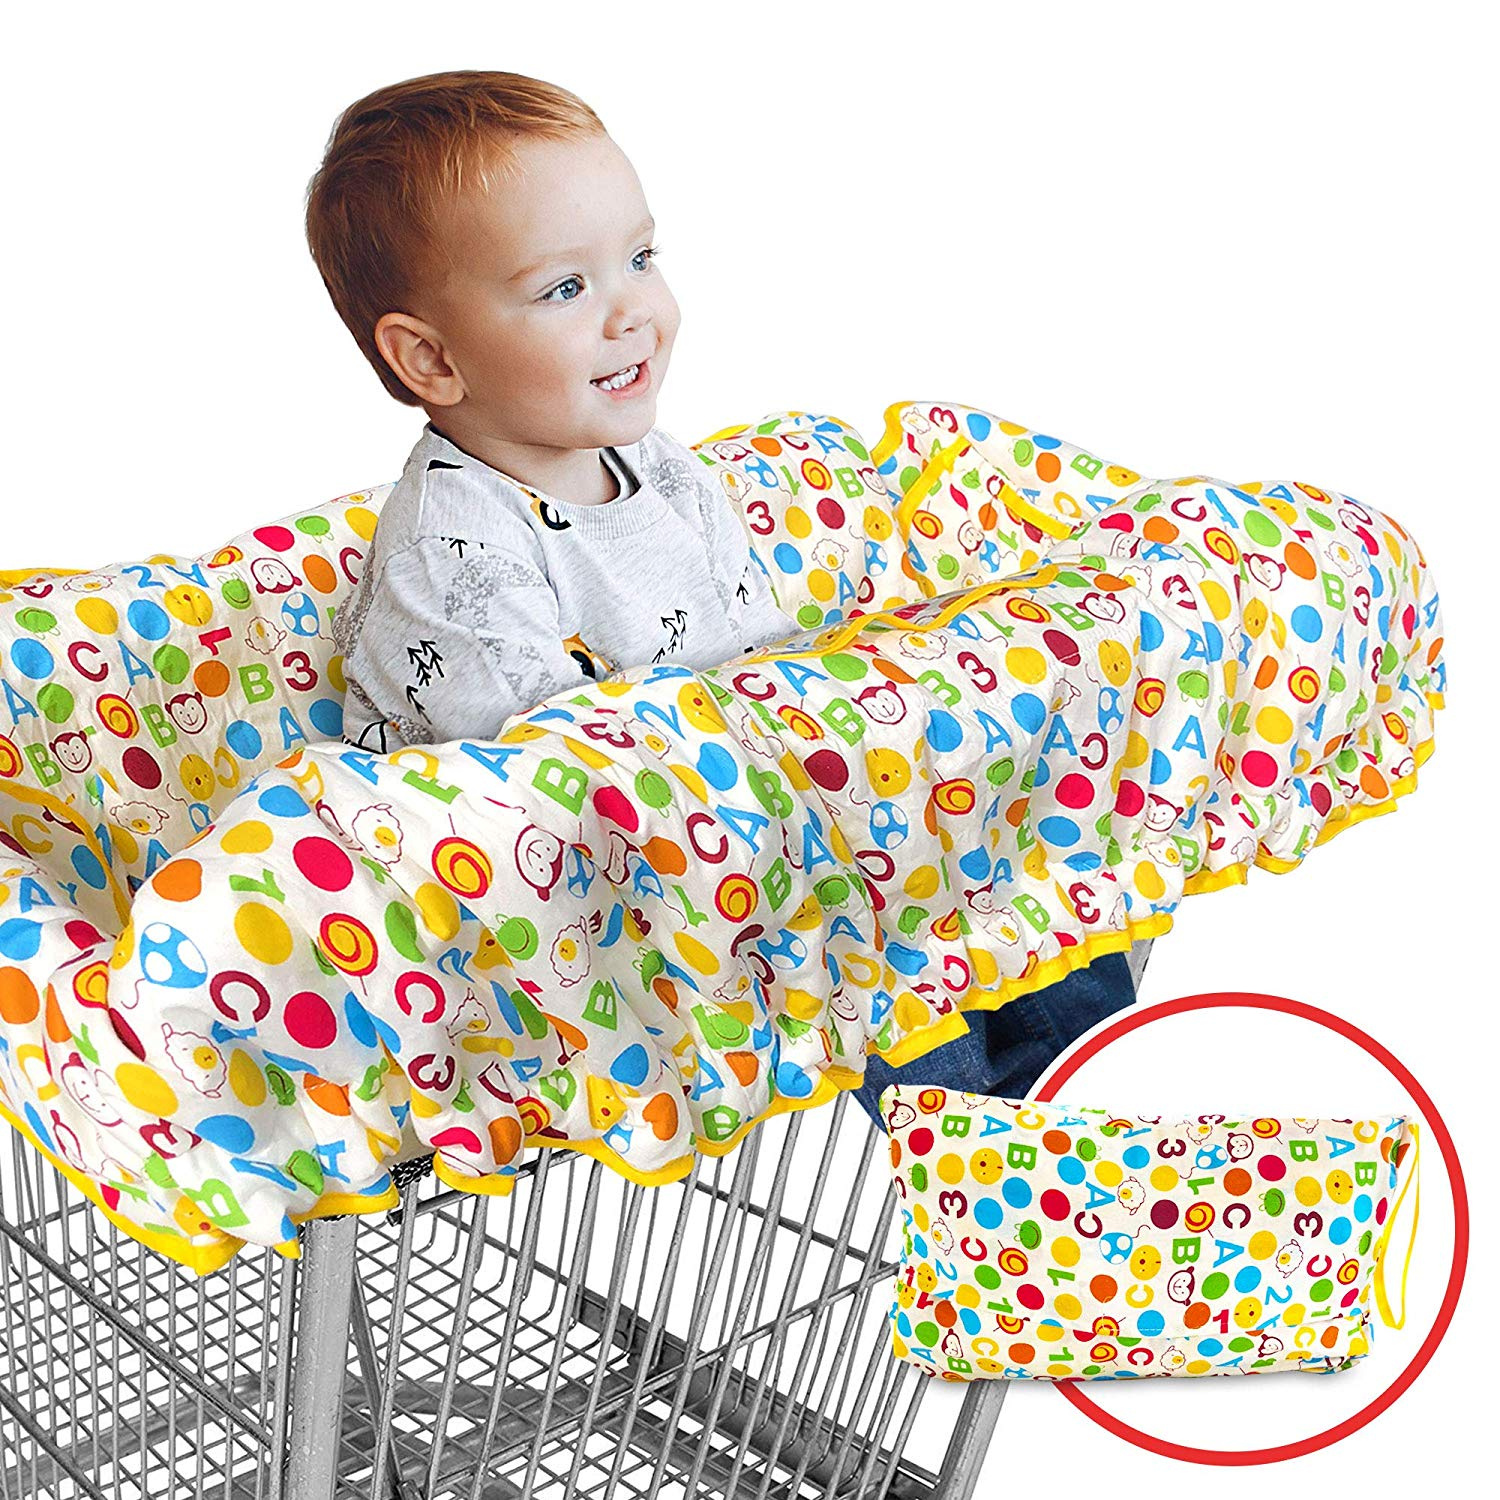 Arrow Print Machine Washable Lekebaby 2-in-1 Shopping Cart Seat Cover Restaurant High Chair Cover for Infants Toddler and Baby